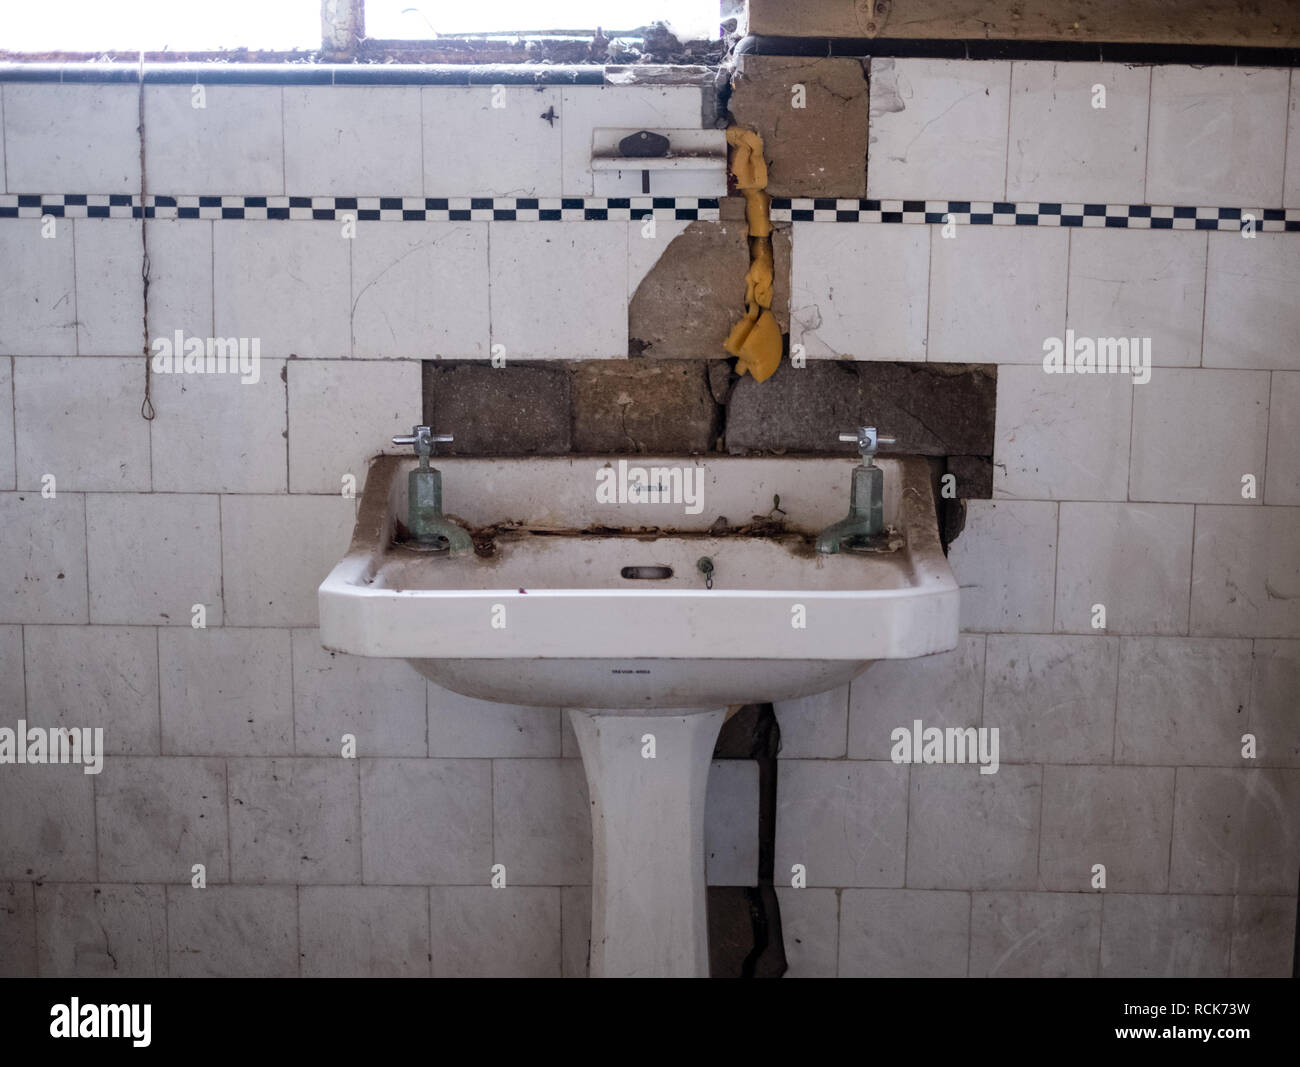 Rayner's Lane, Harrow, Middlesex UK. January 2019. Close up of Shanks hand basin and original tiles in derelict deco style house. House is due for dem - Stock Image